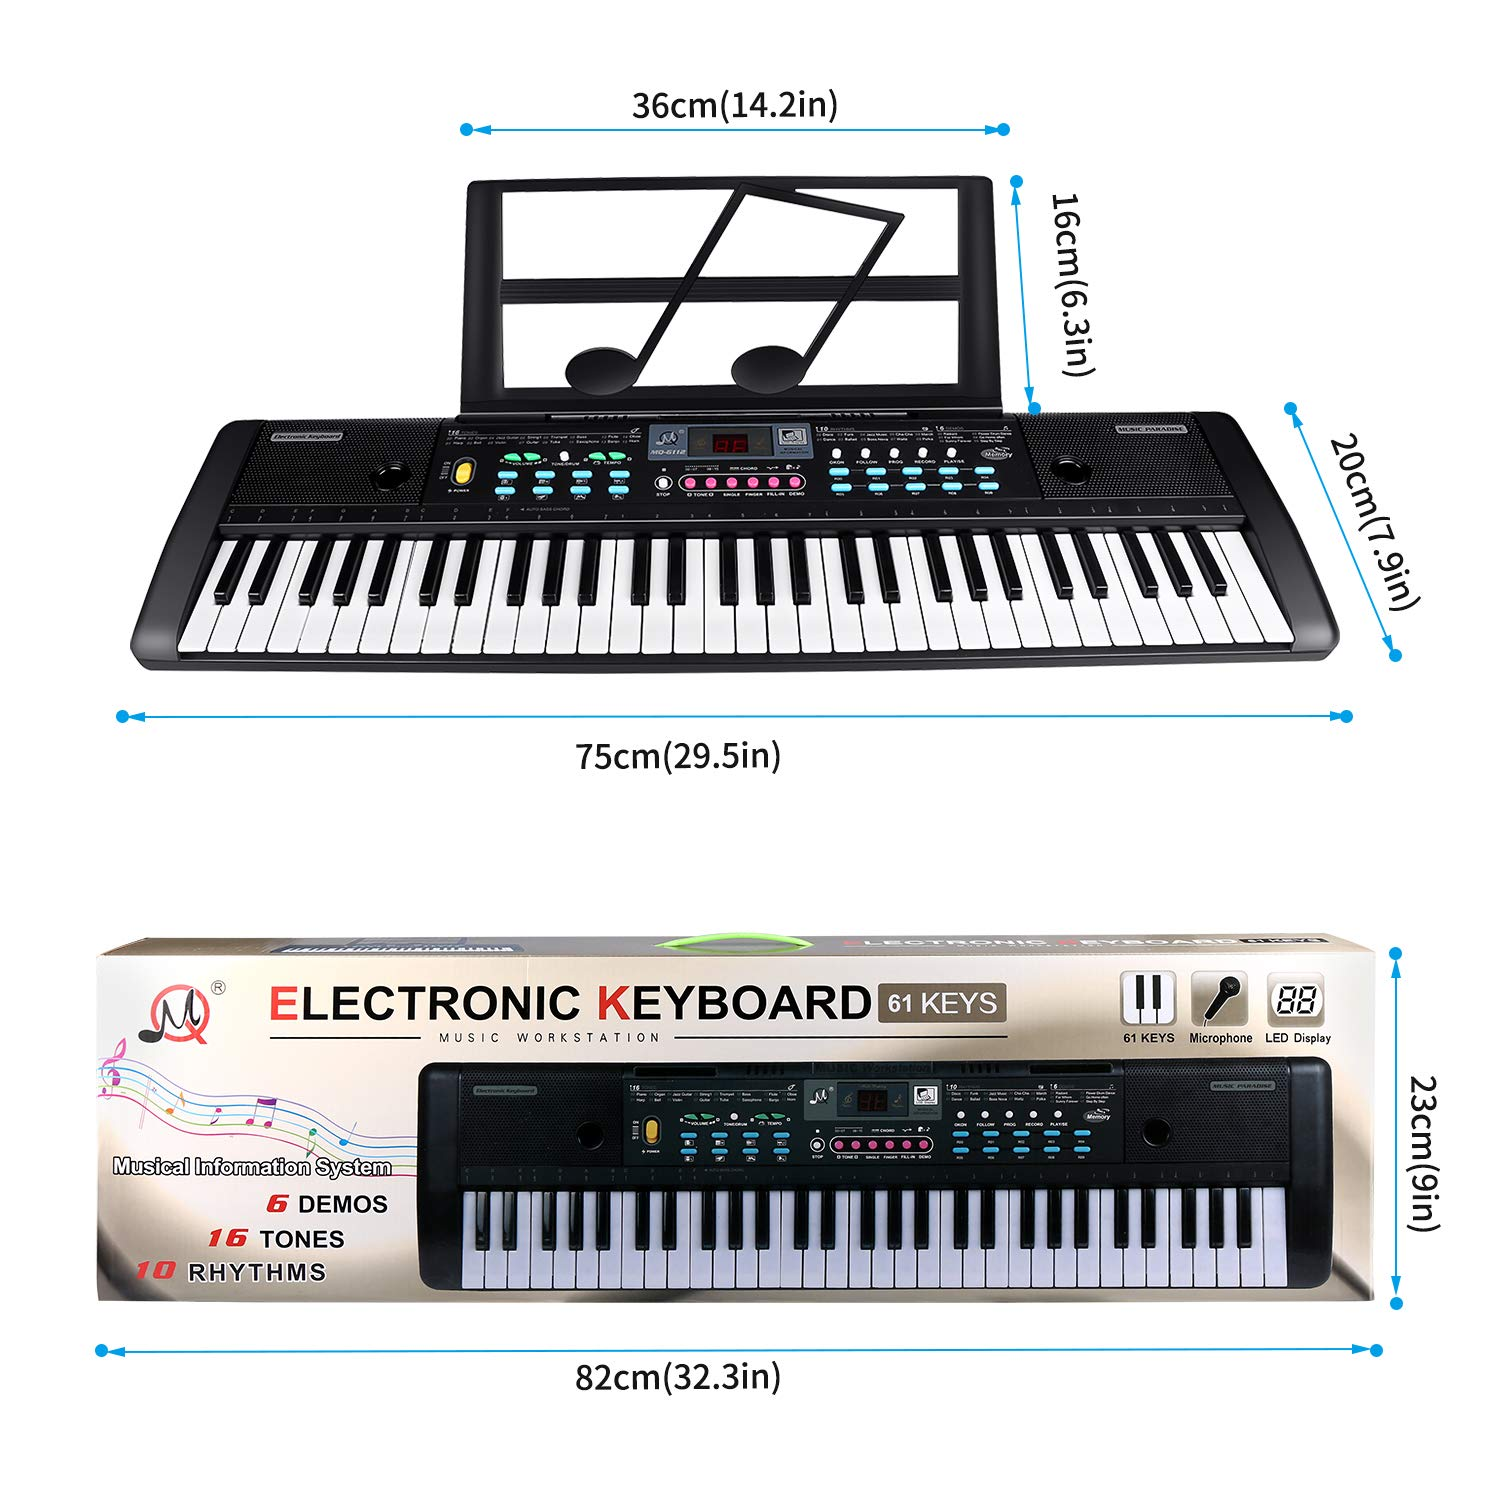 ZJTL 61-Key Digital Electric Piano Keyboard & Music Stand & microphone- Portable Electronic Keyboard (Kids & Adults) MQ-6112 by ZJTL (Image #6)